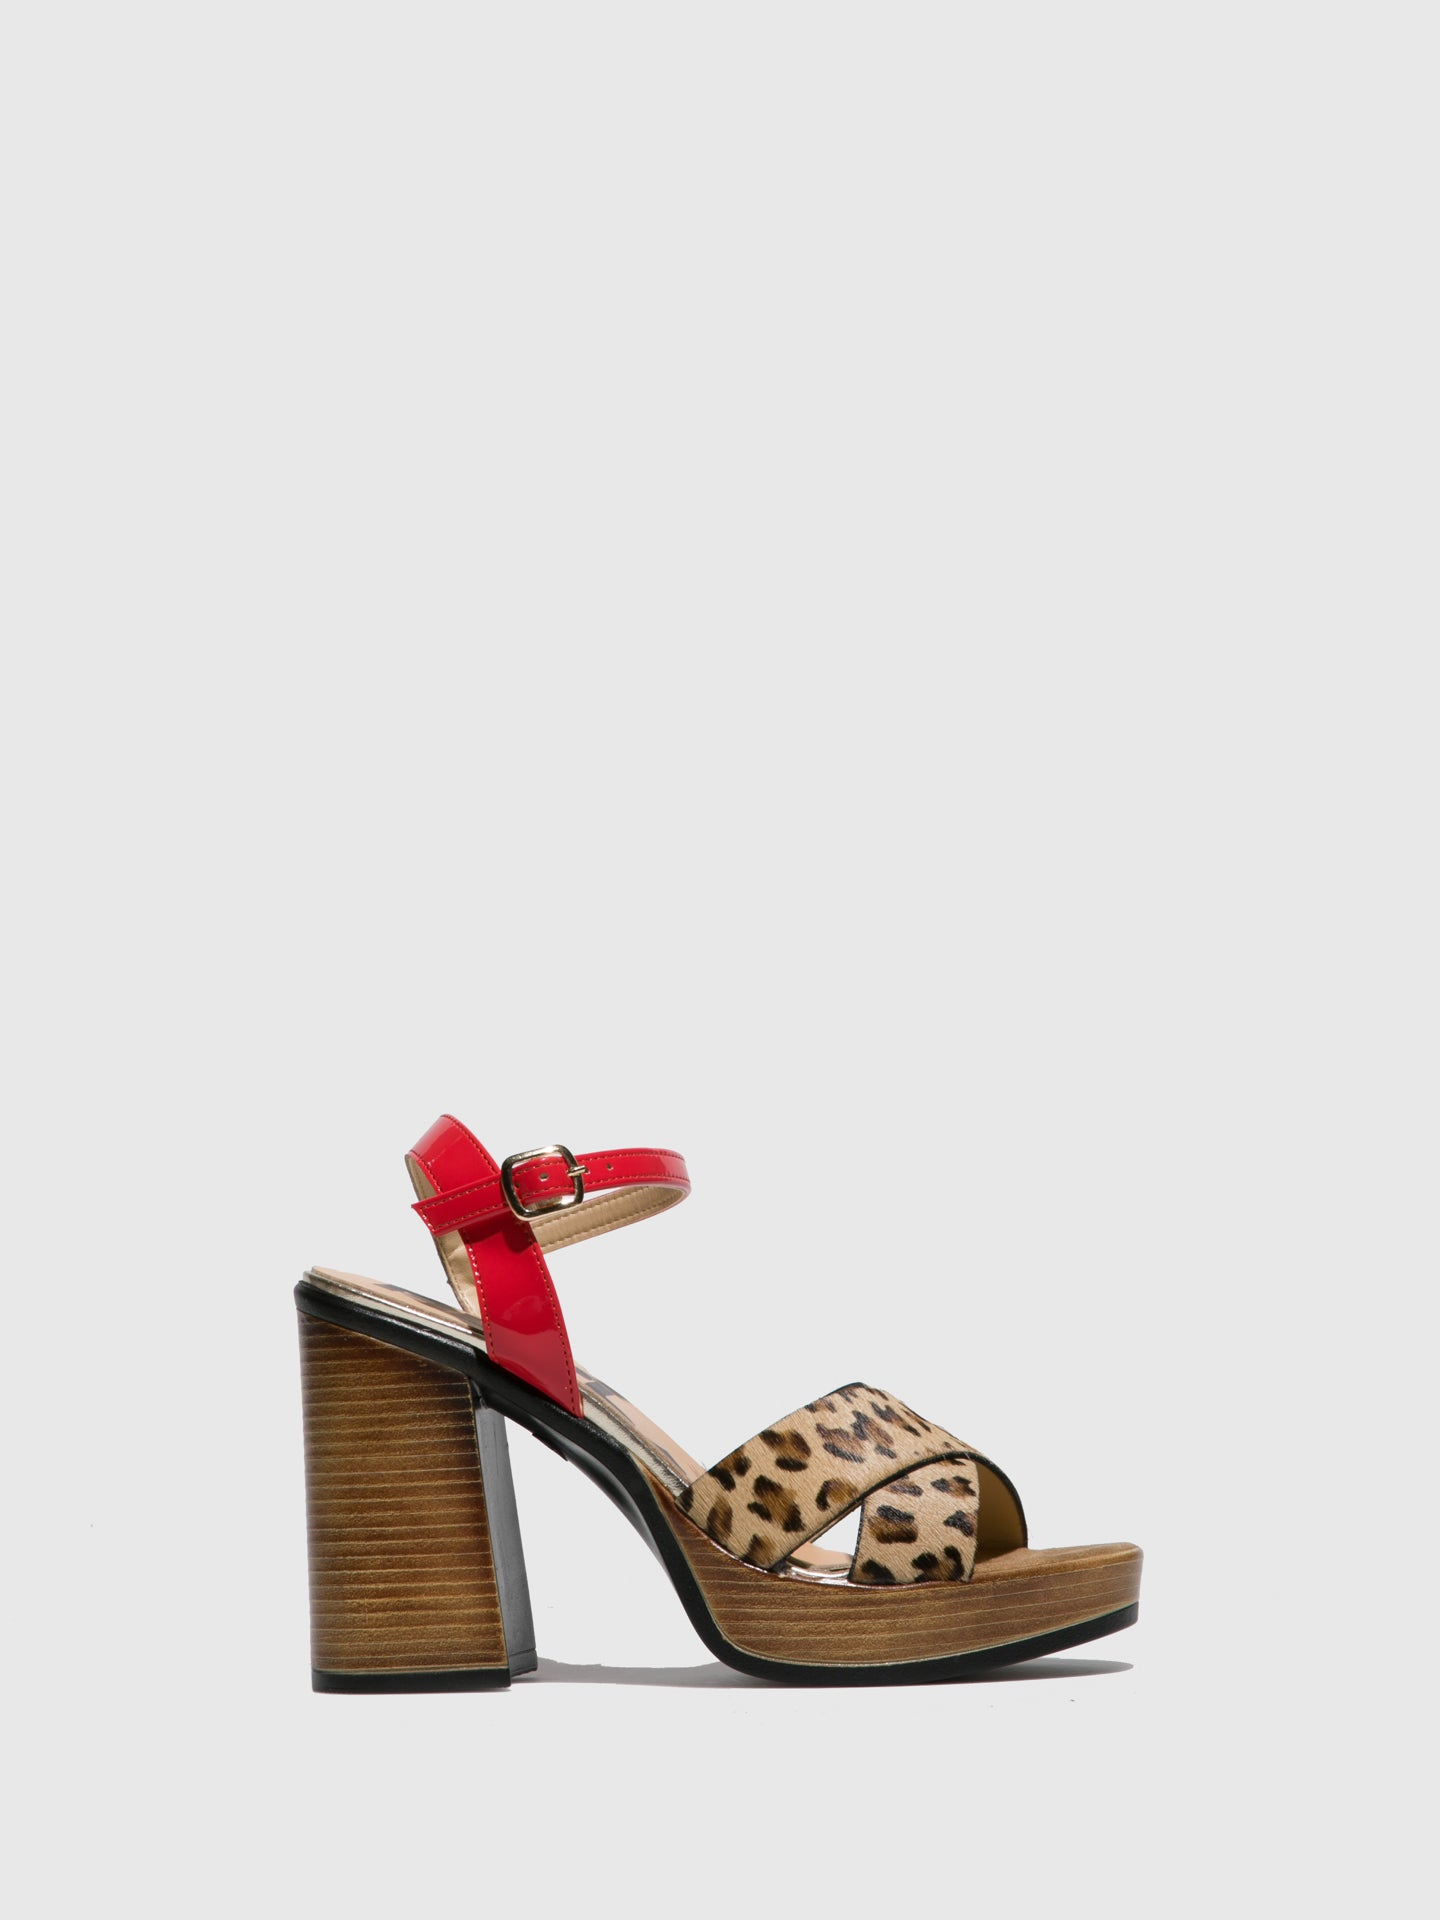 Replay Red Ankle Strap Sandals